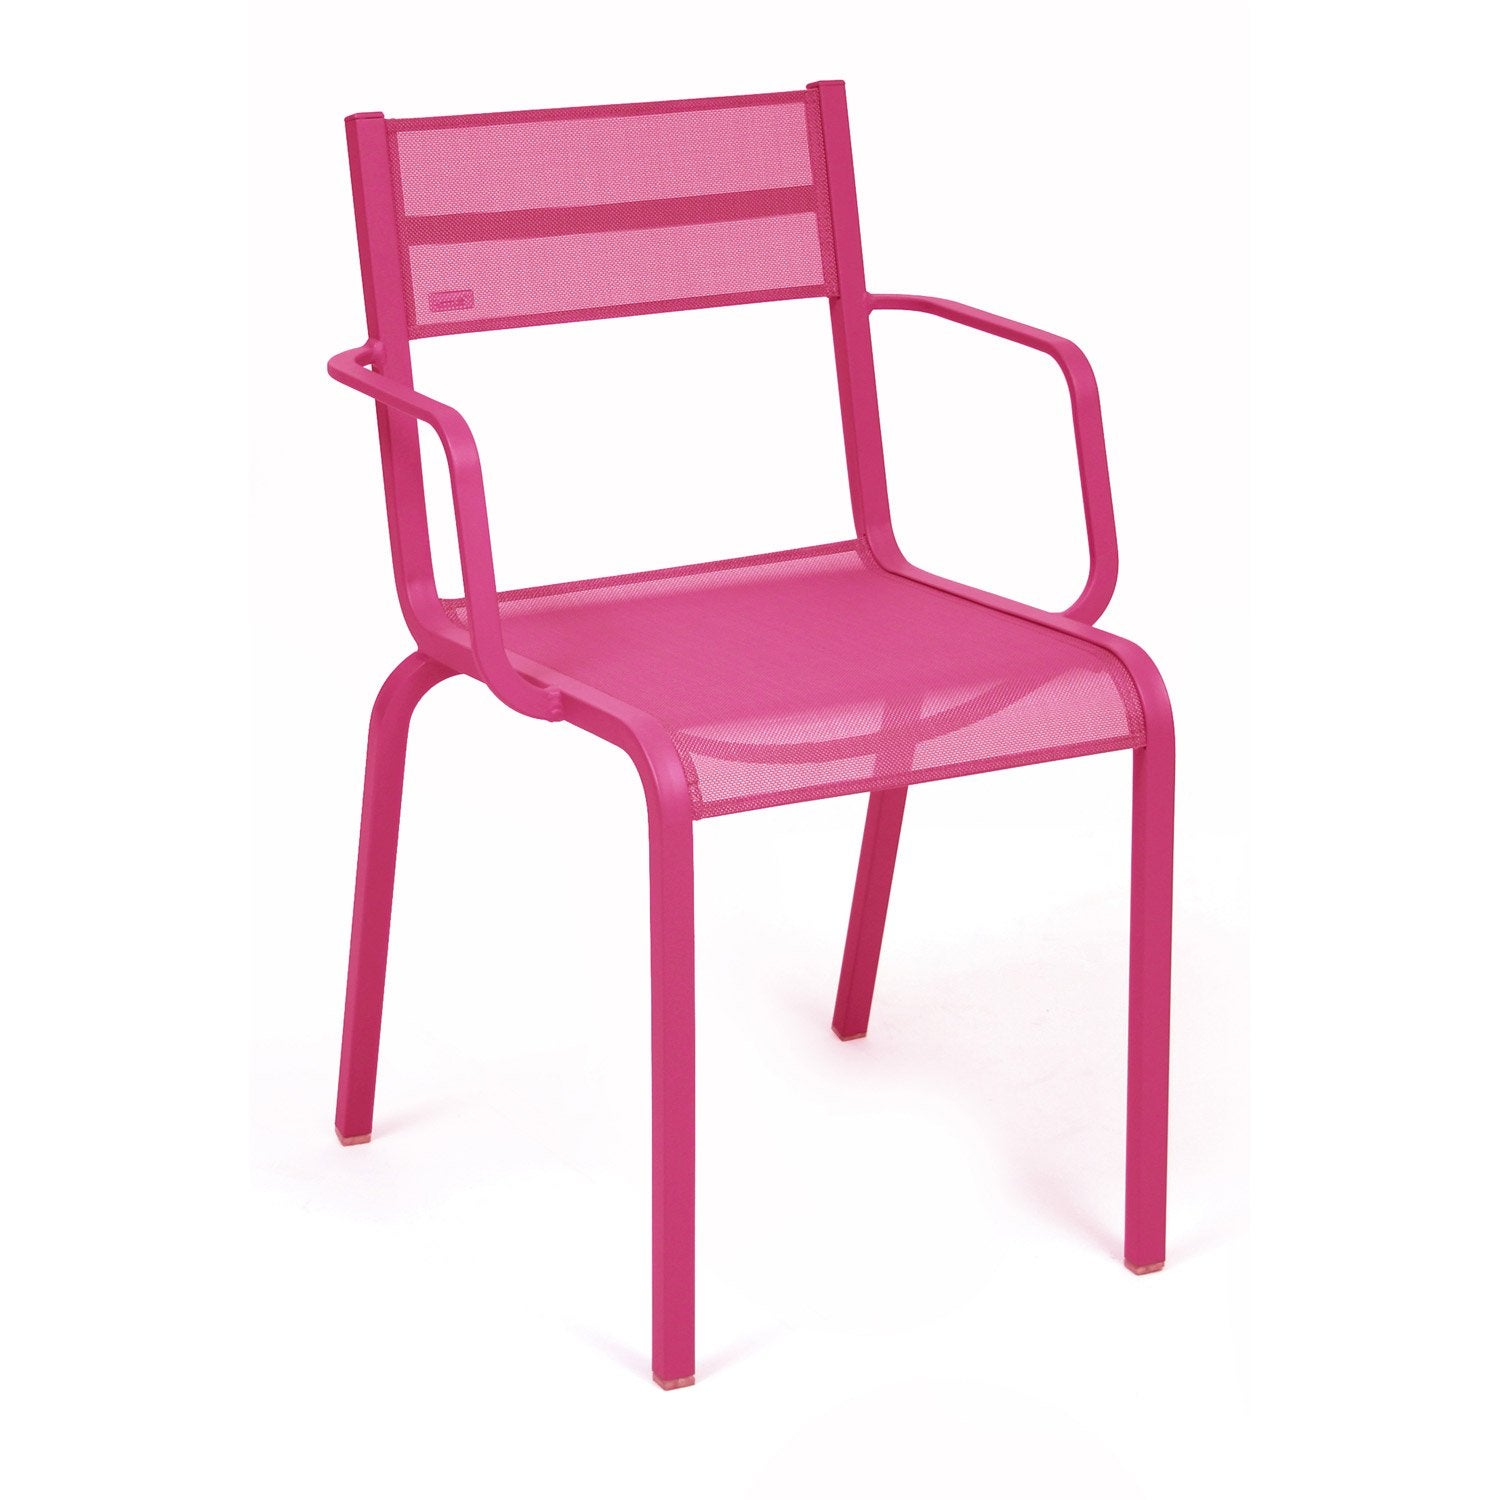 fauteuil de jardin en aluminium ol ron fuchsia leroy merlin. Black Bedroom Furniture Sets. Home Design Ideas